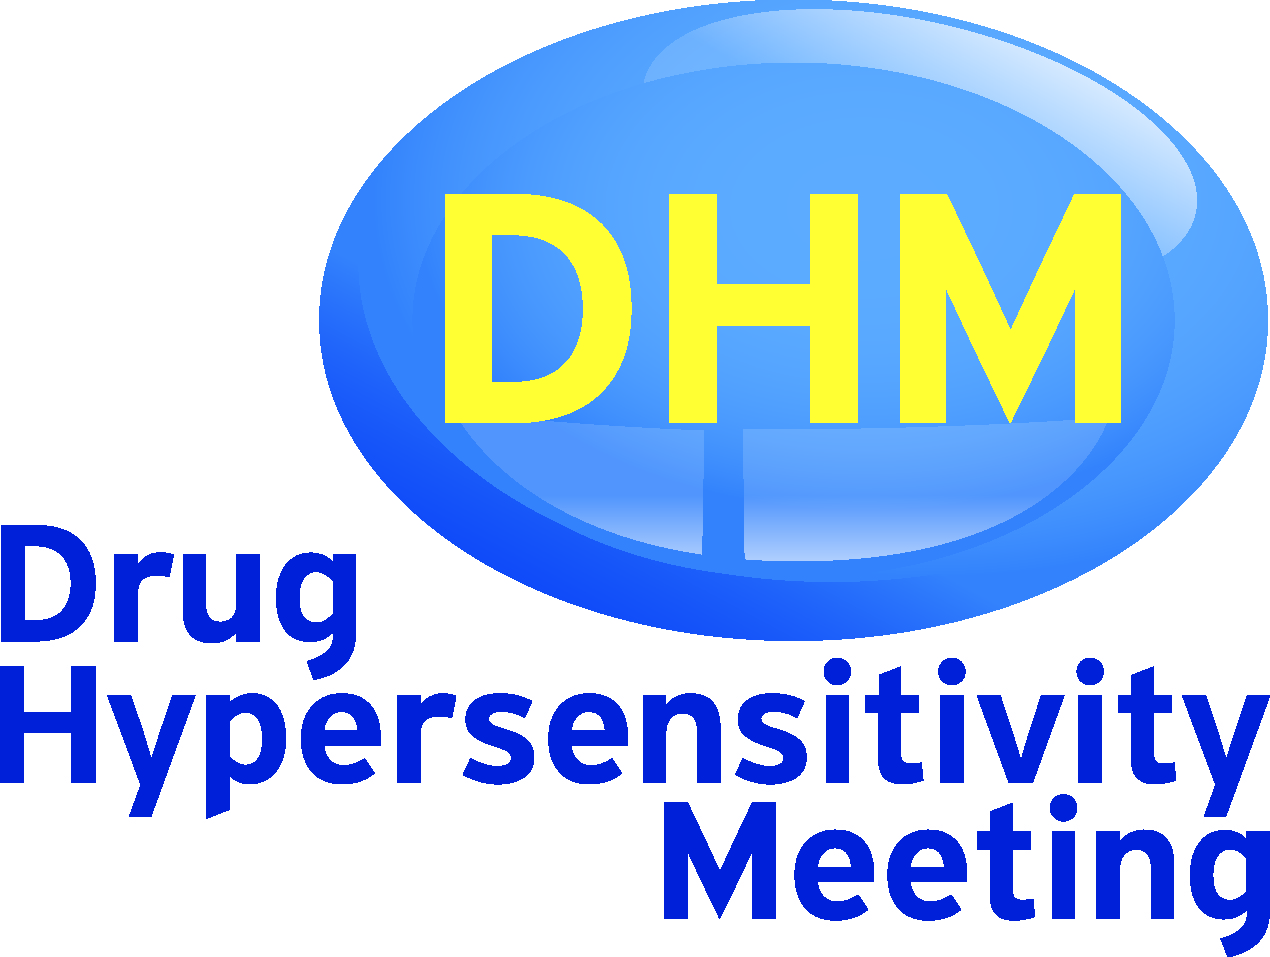 DHM 2016, Drug Hypersensitivity Meeting